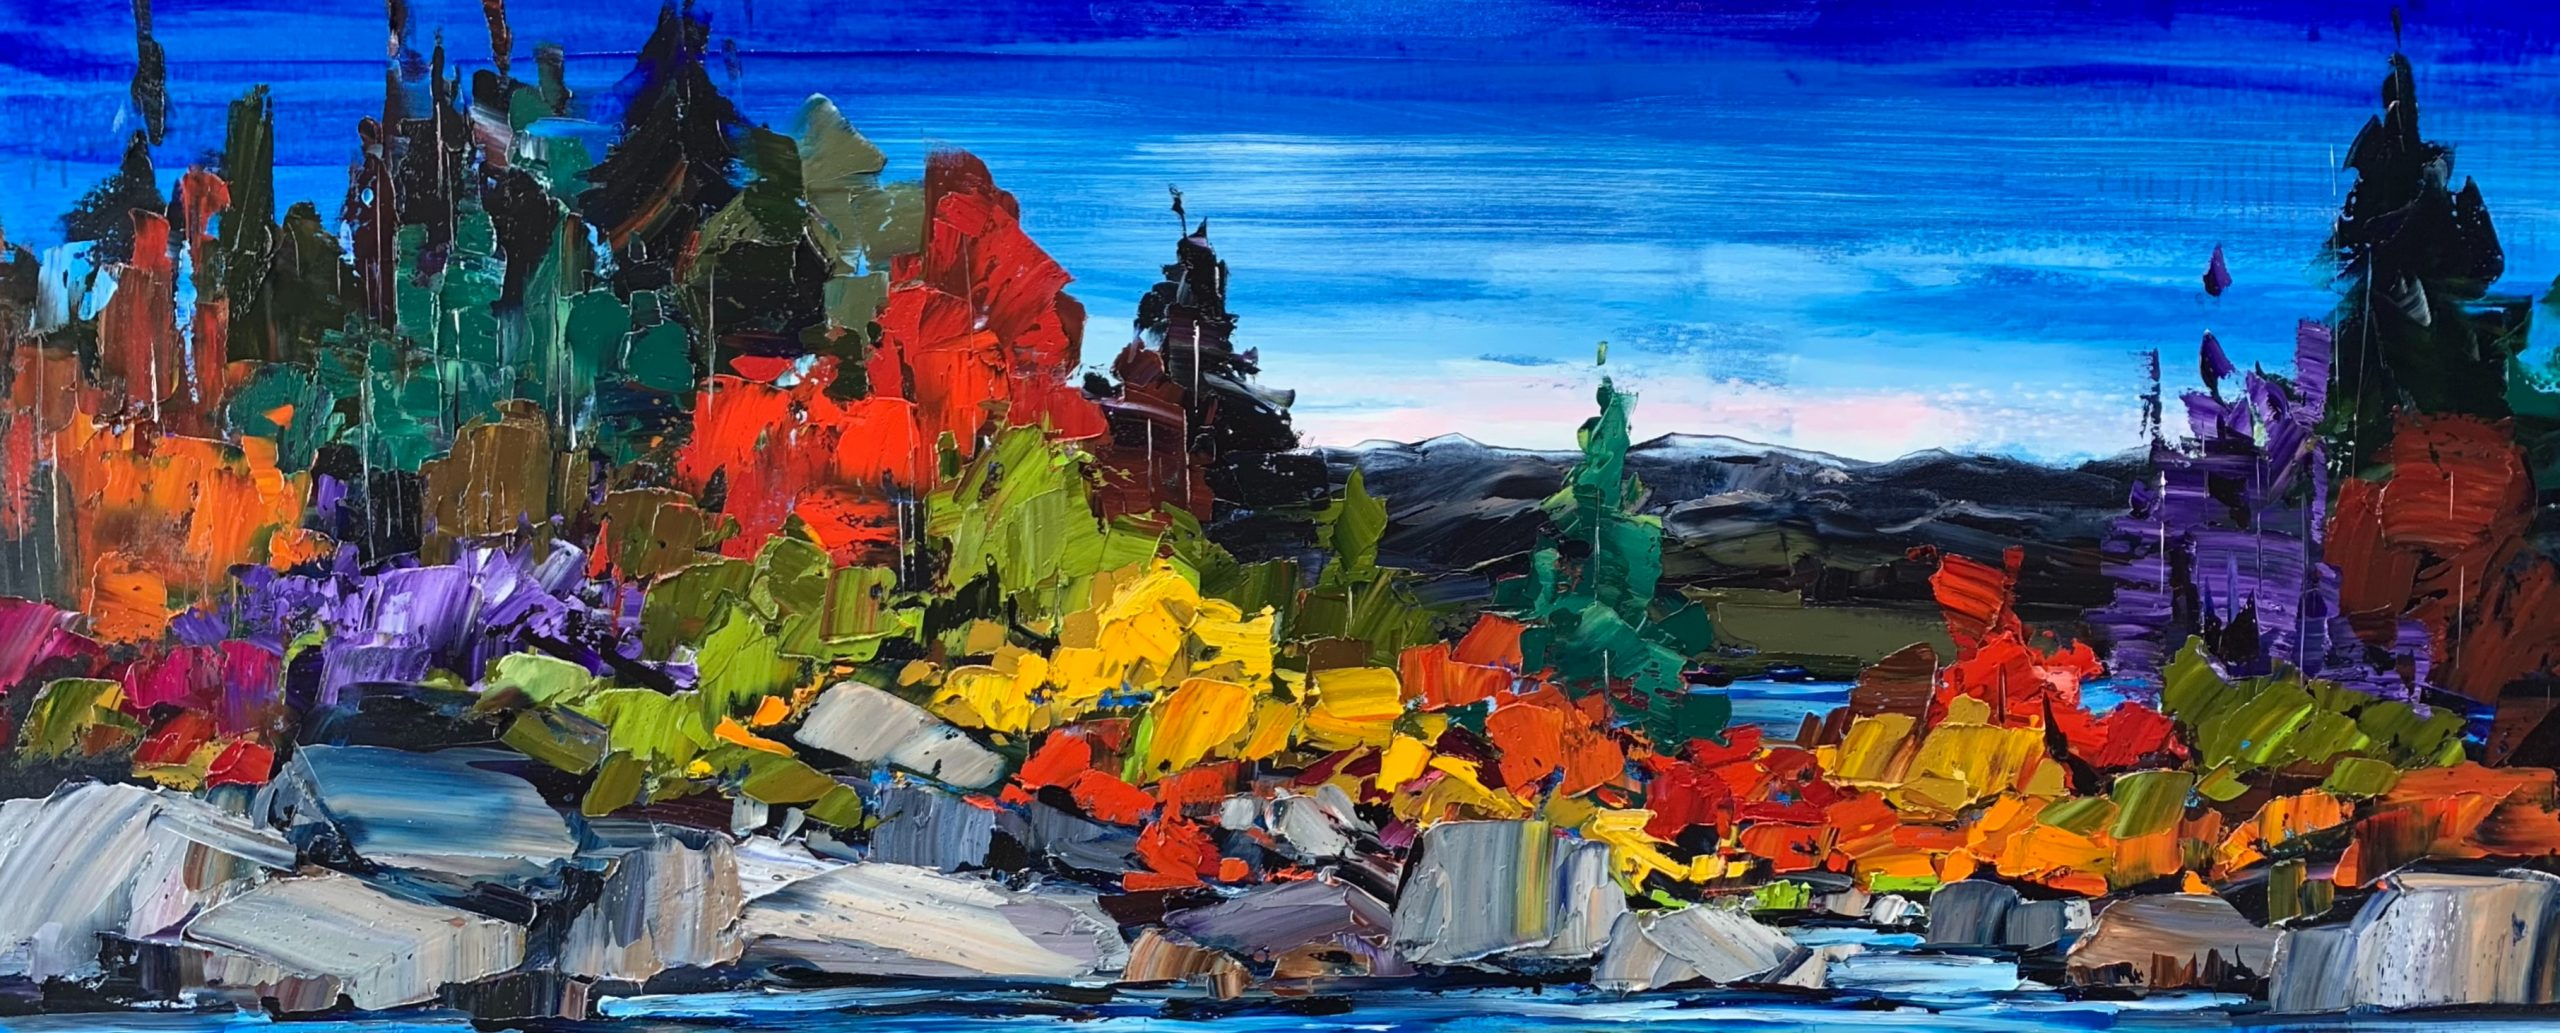 Bring it on Home, oil landscape painting by Kimberly Kiel | Effusion Art Gallery + Cast Glass Studio, Invermere BC